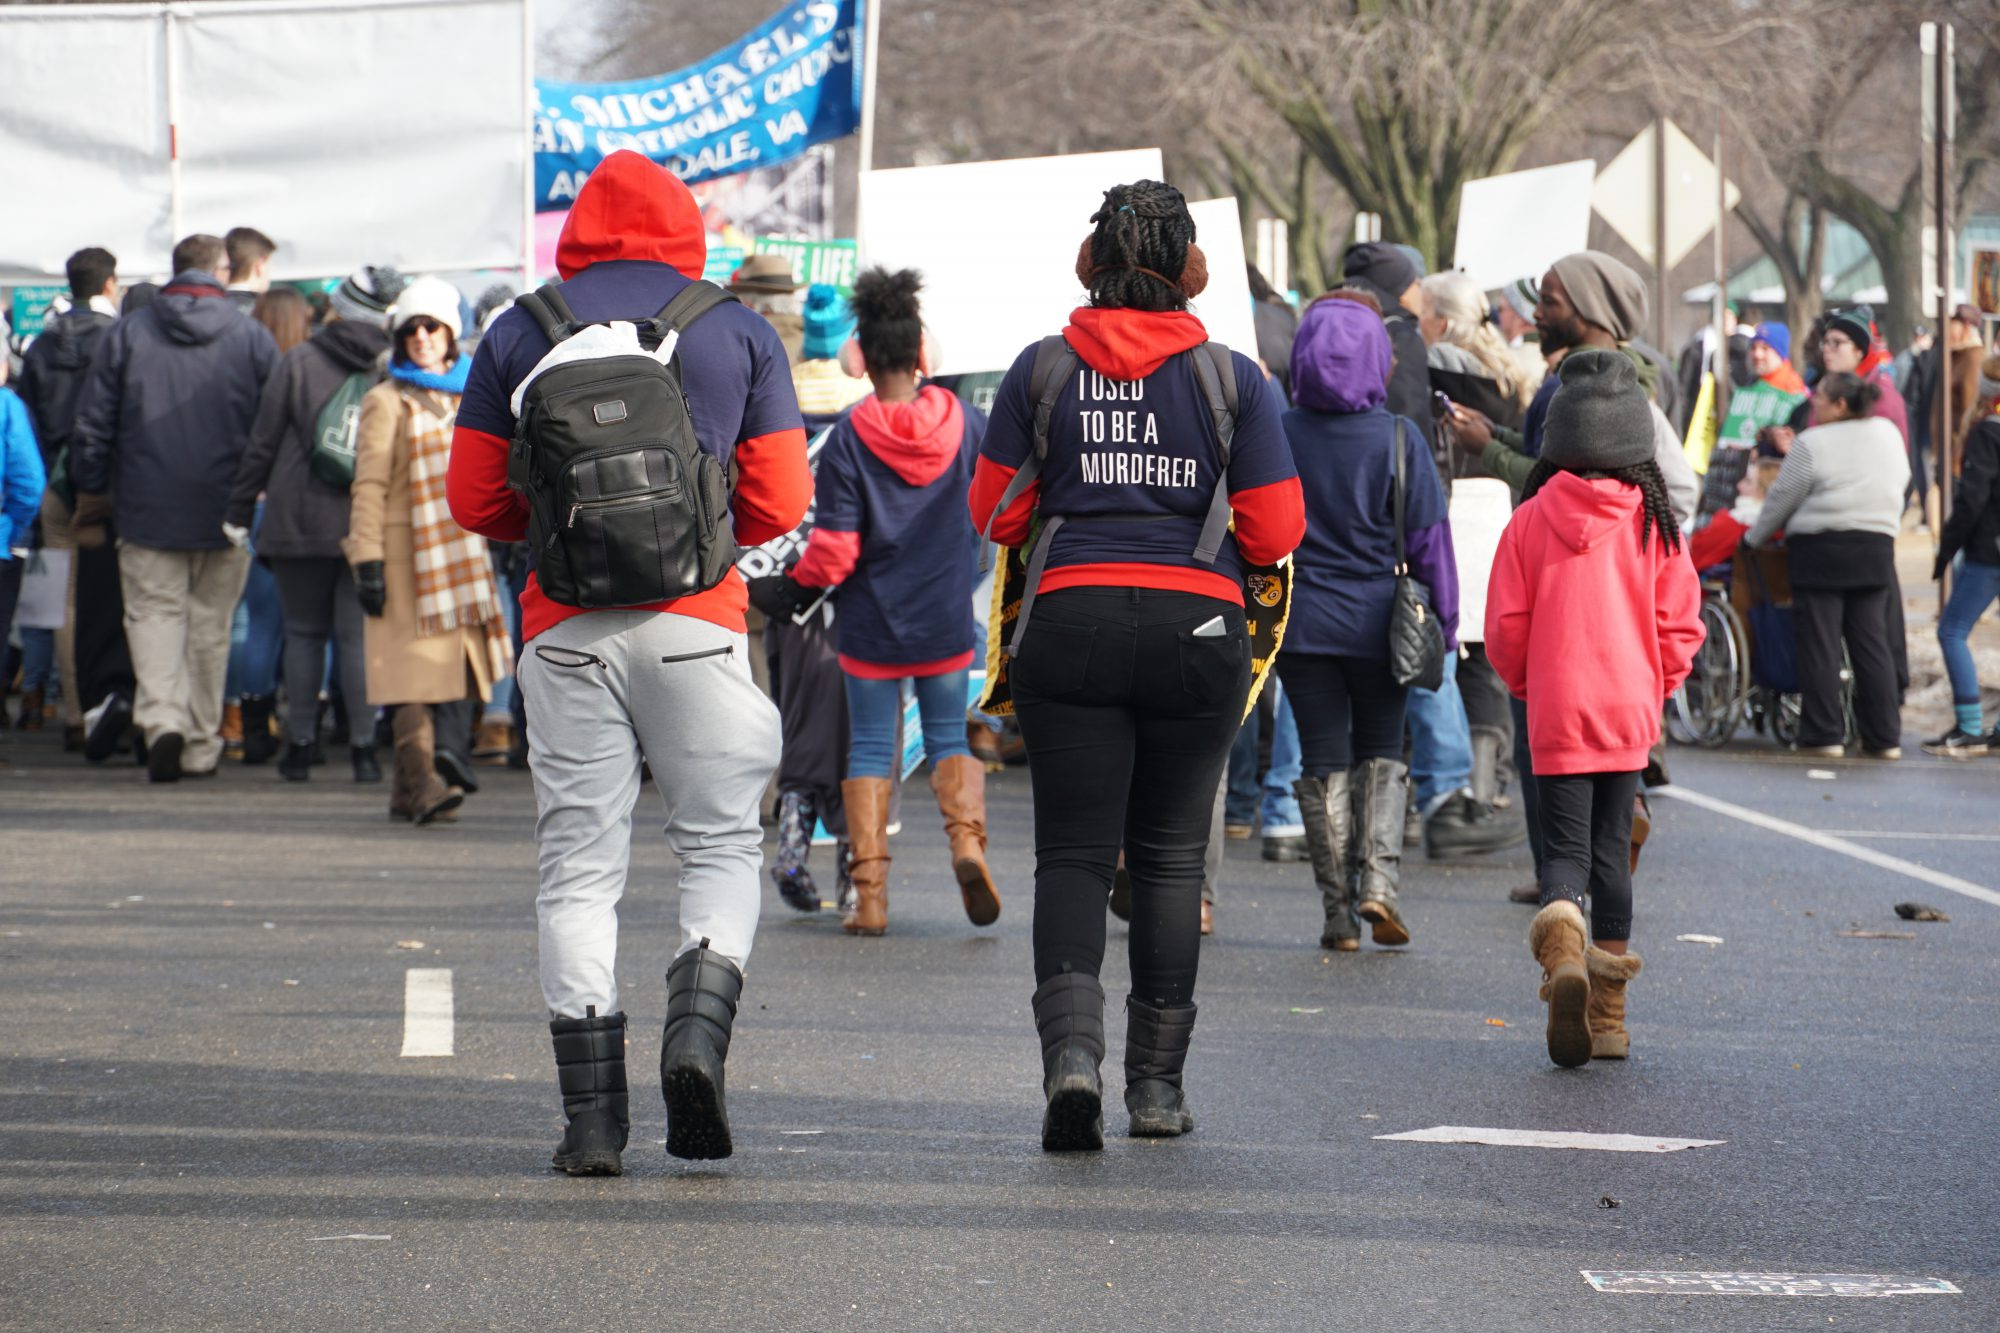 The woman whose views on abortion changed walked with her family at the end of the march. (Ester Wells/MNS)